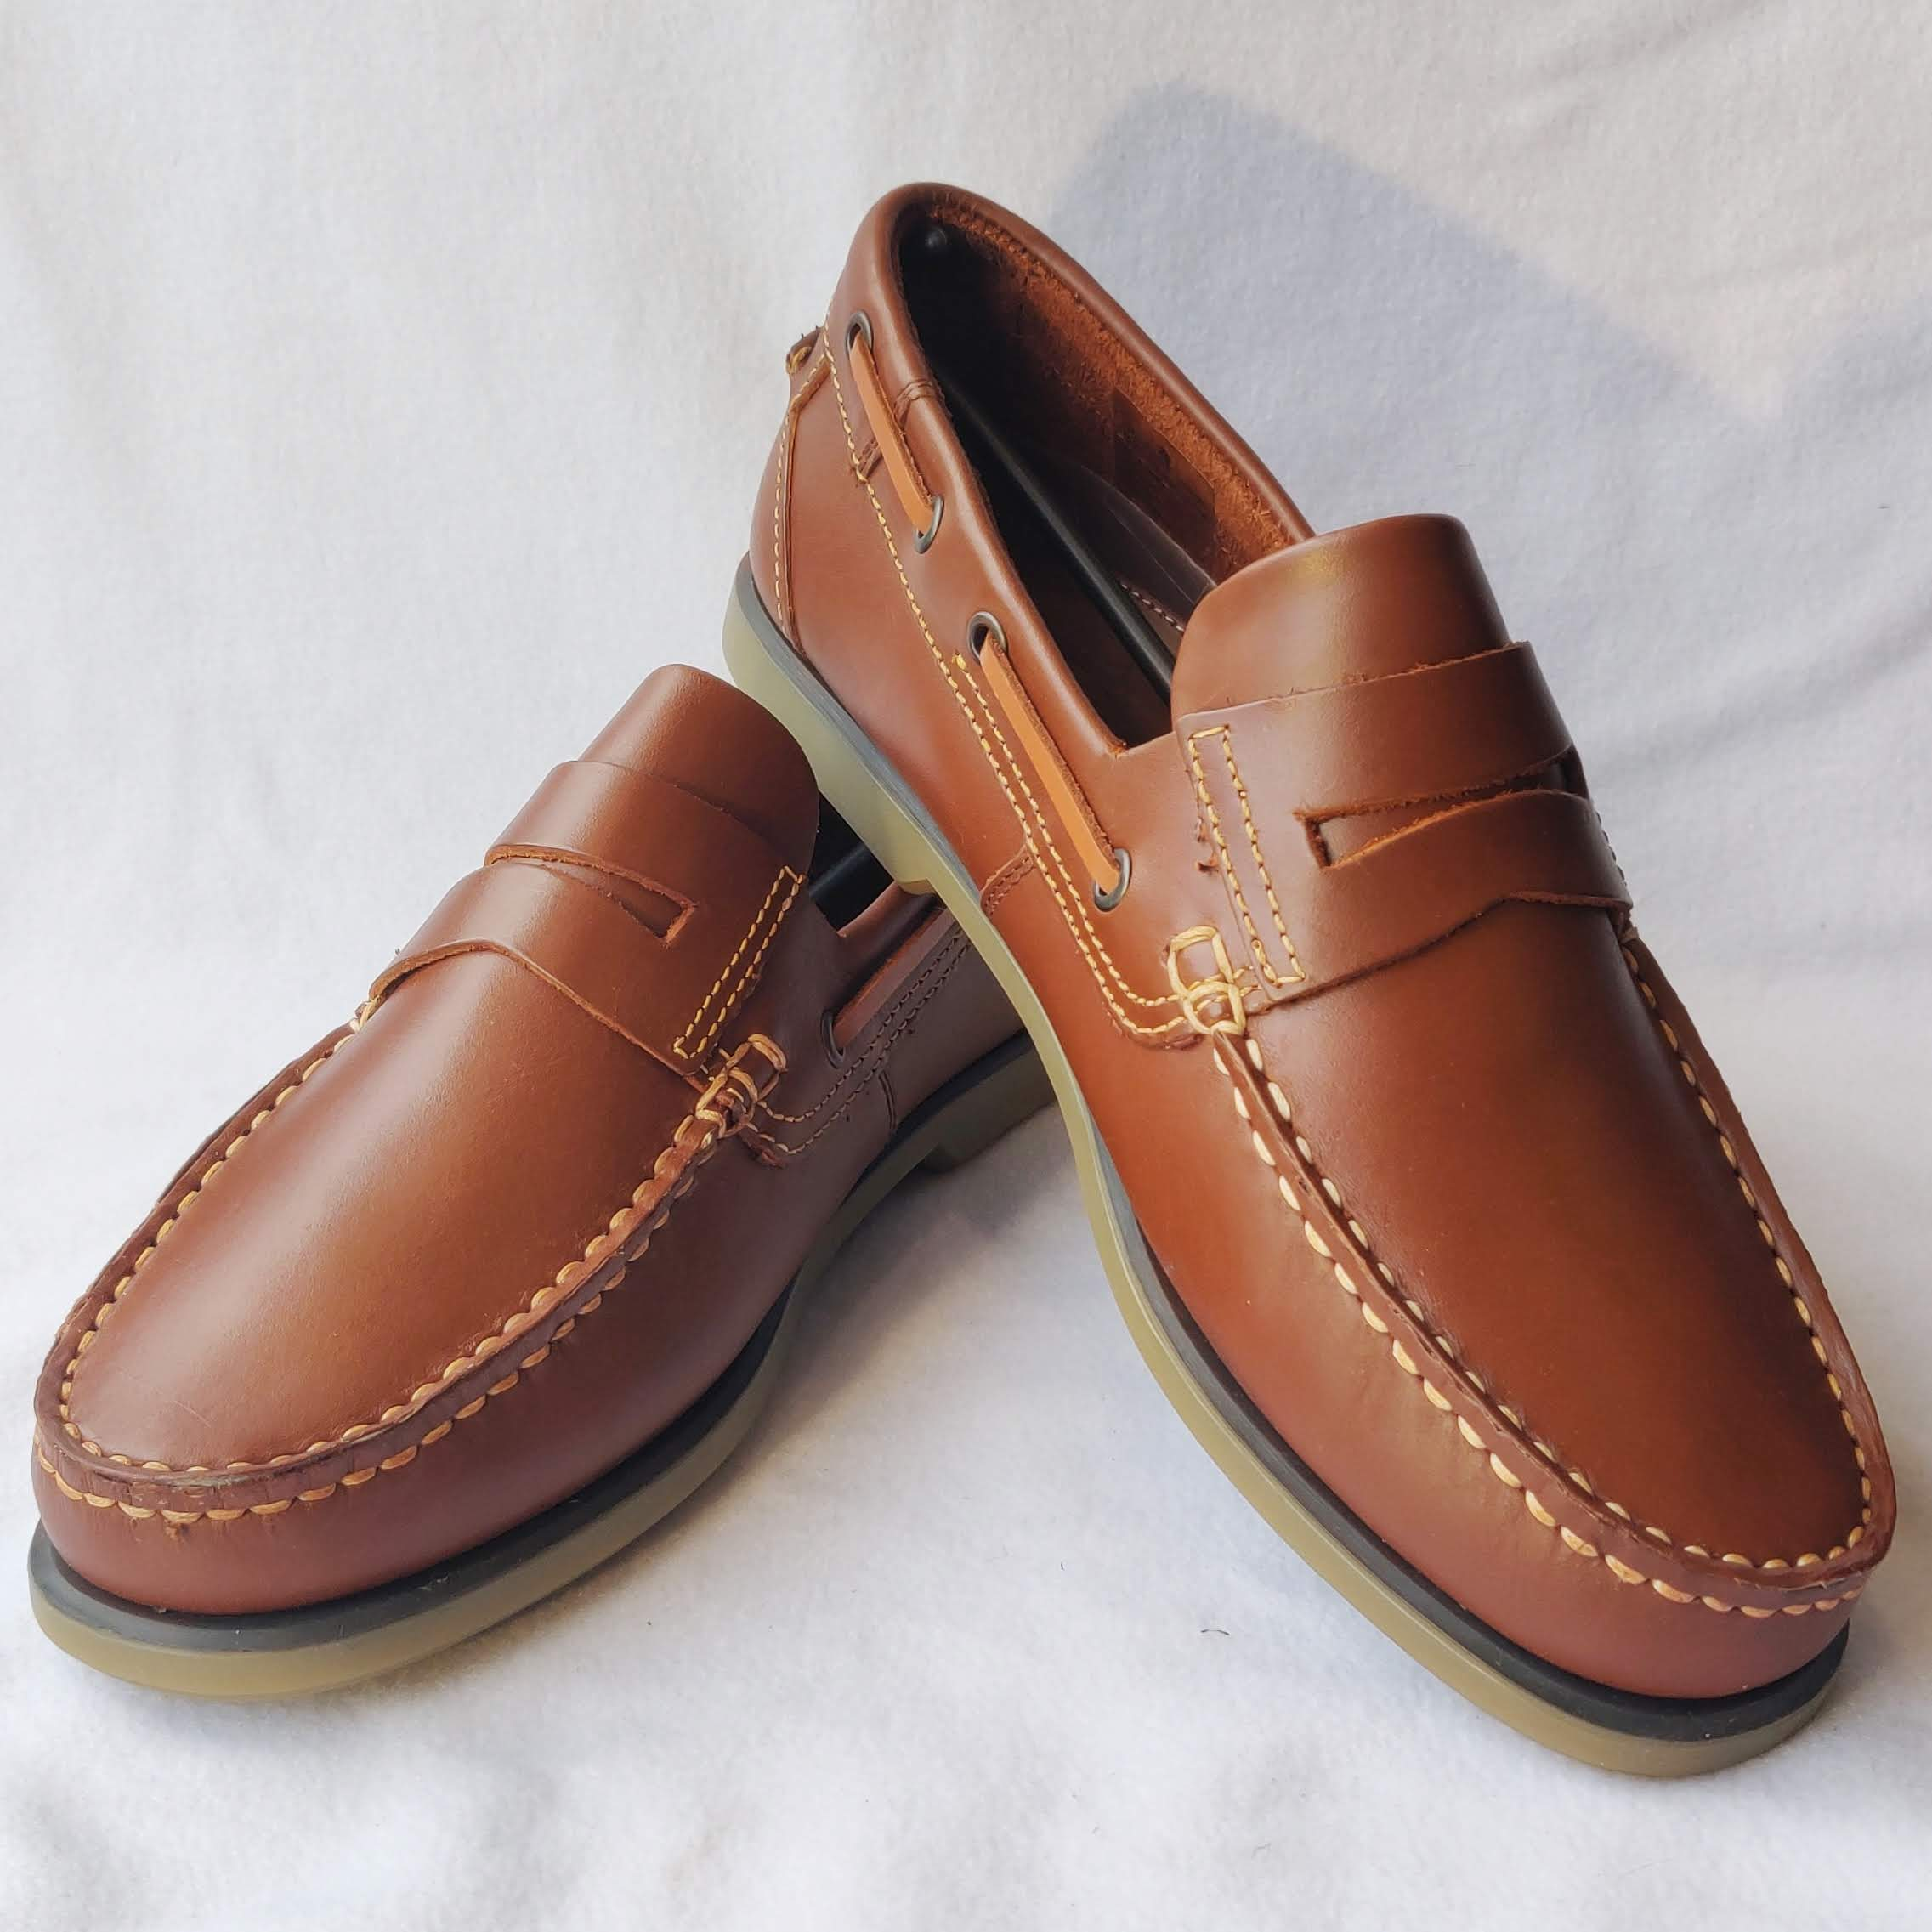 Dek Tan Leather Boat Shoes